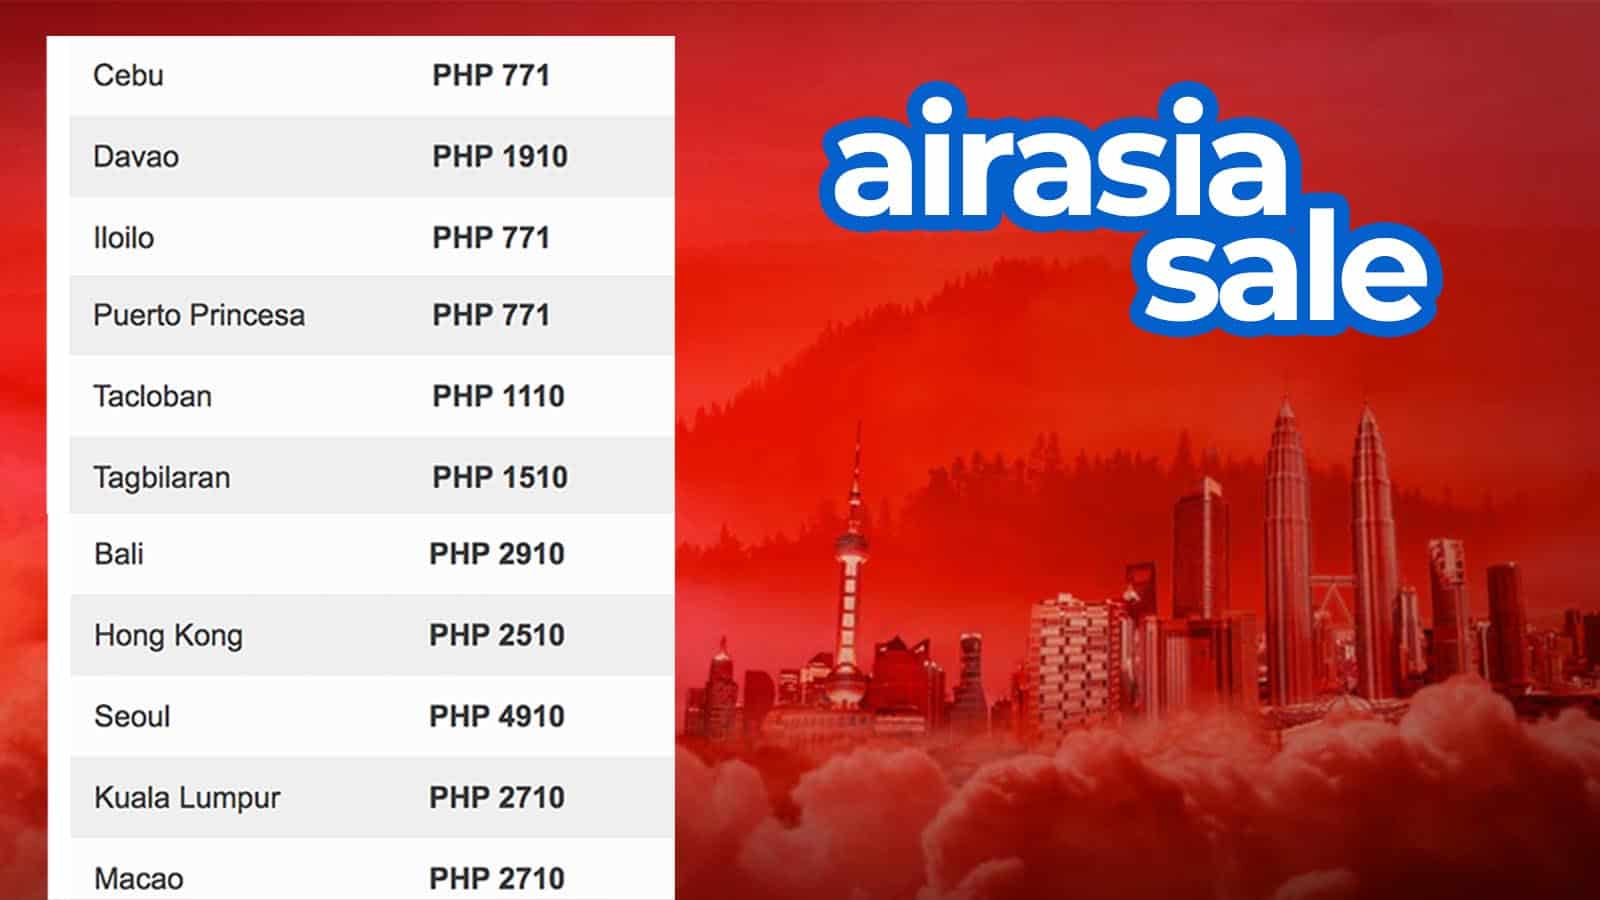 AirAsia Launches Massive SALE after 'Best Low Cost Airline' Win